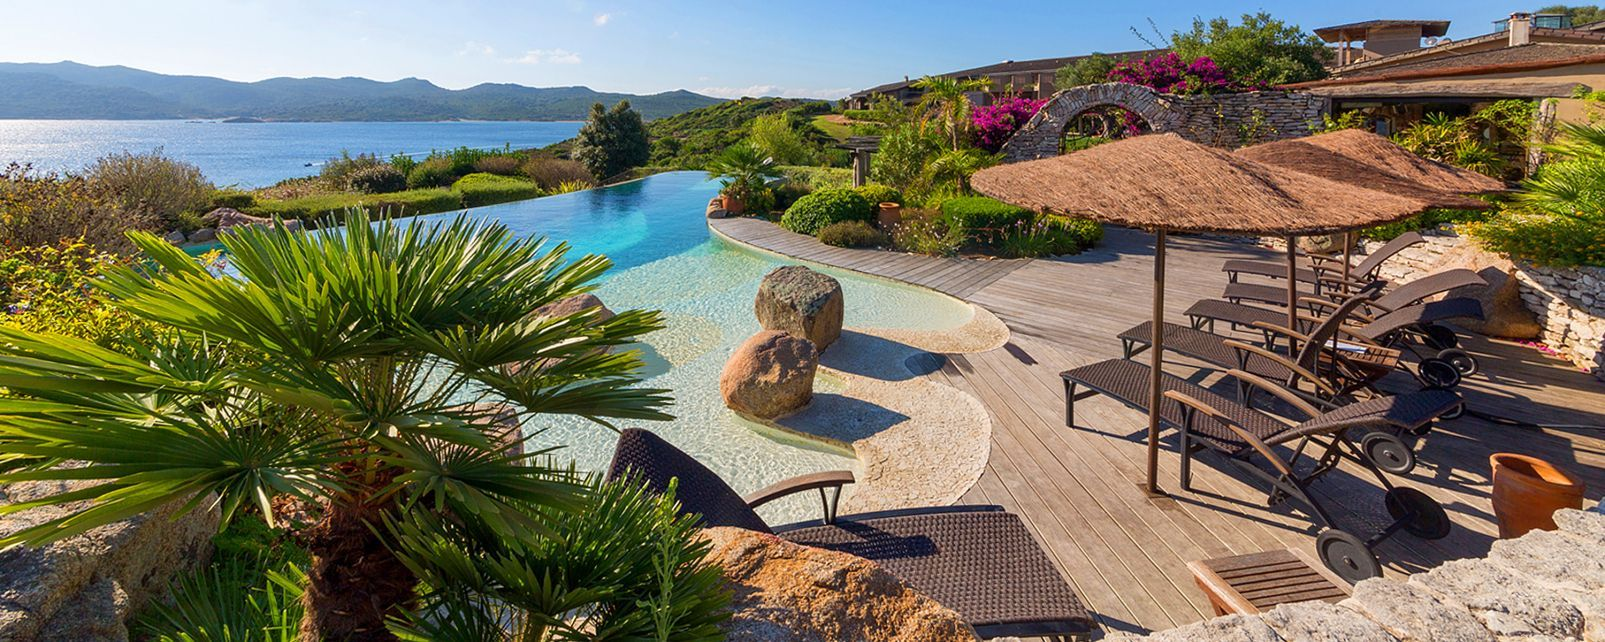 luxury-tailor-made-holidays-corsica